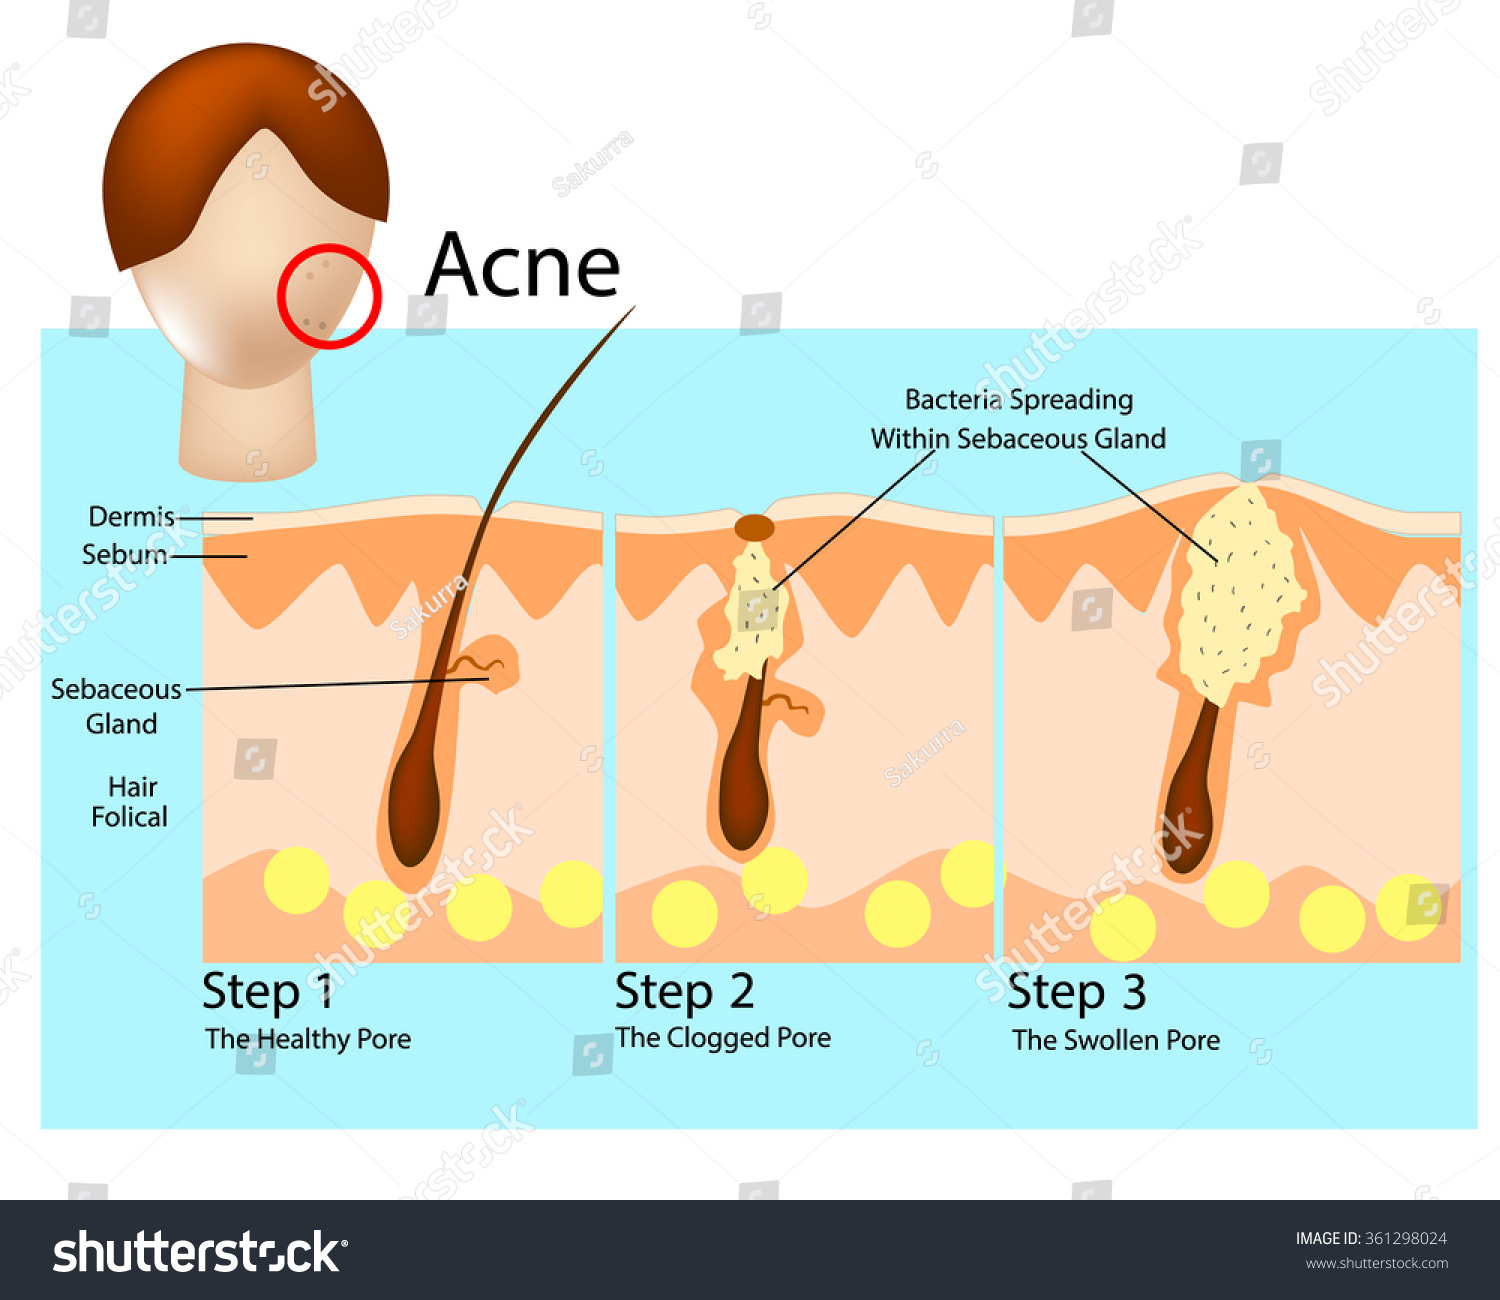 how acne develops acne stages formation stock vector ... diagram of acne cyst diagram of price elasticity of demand